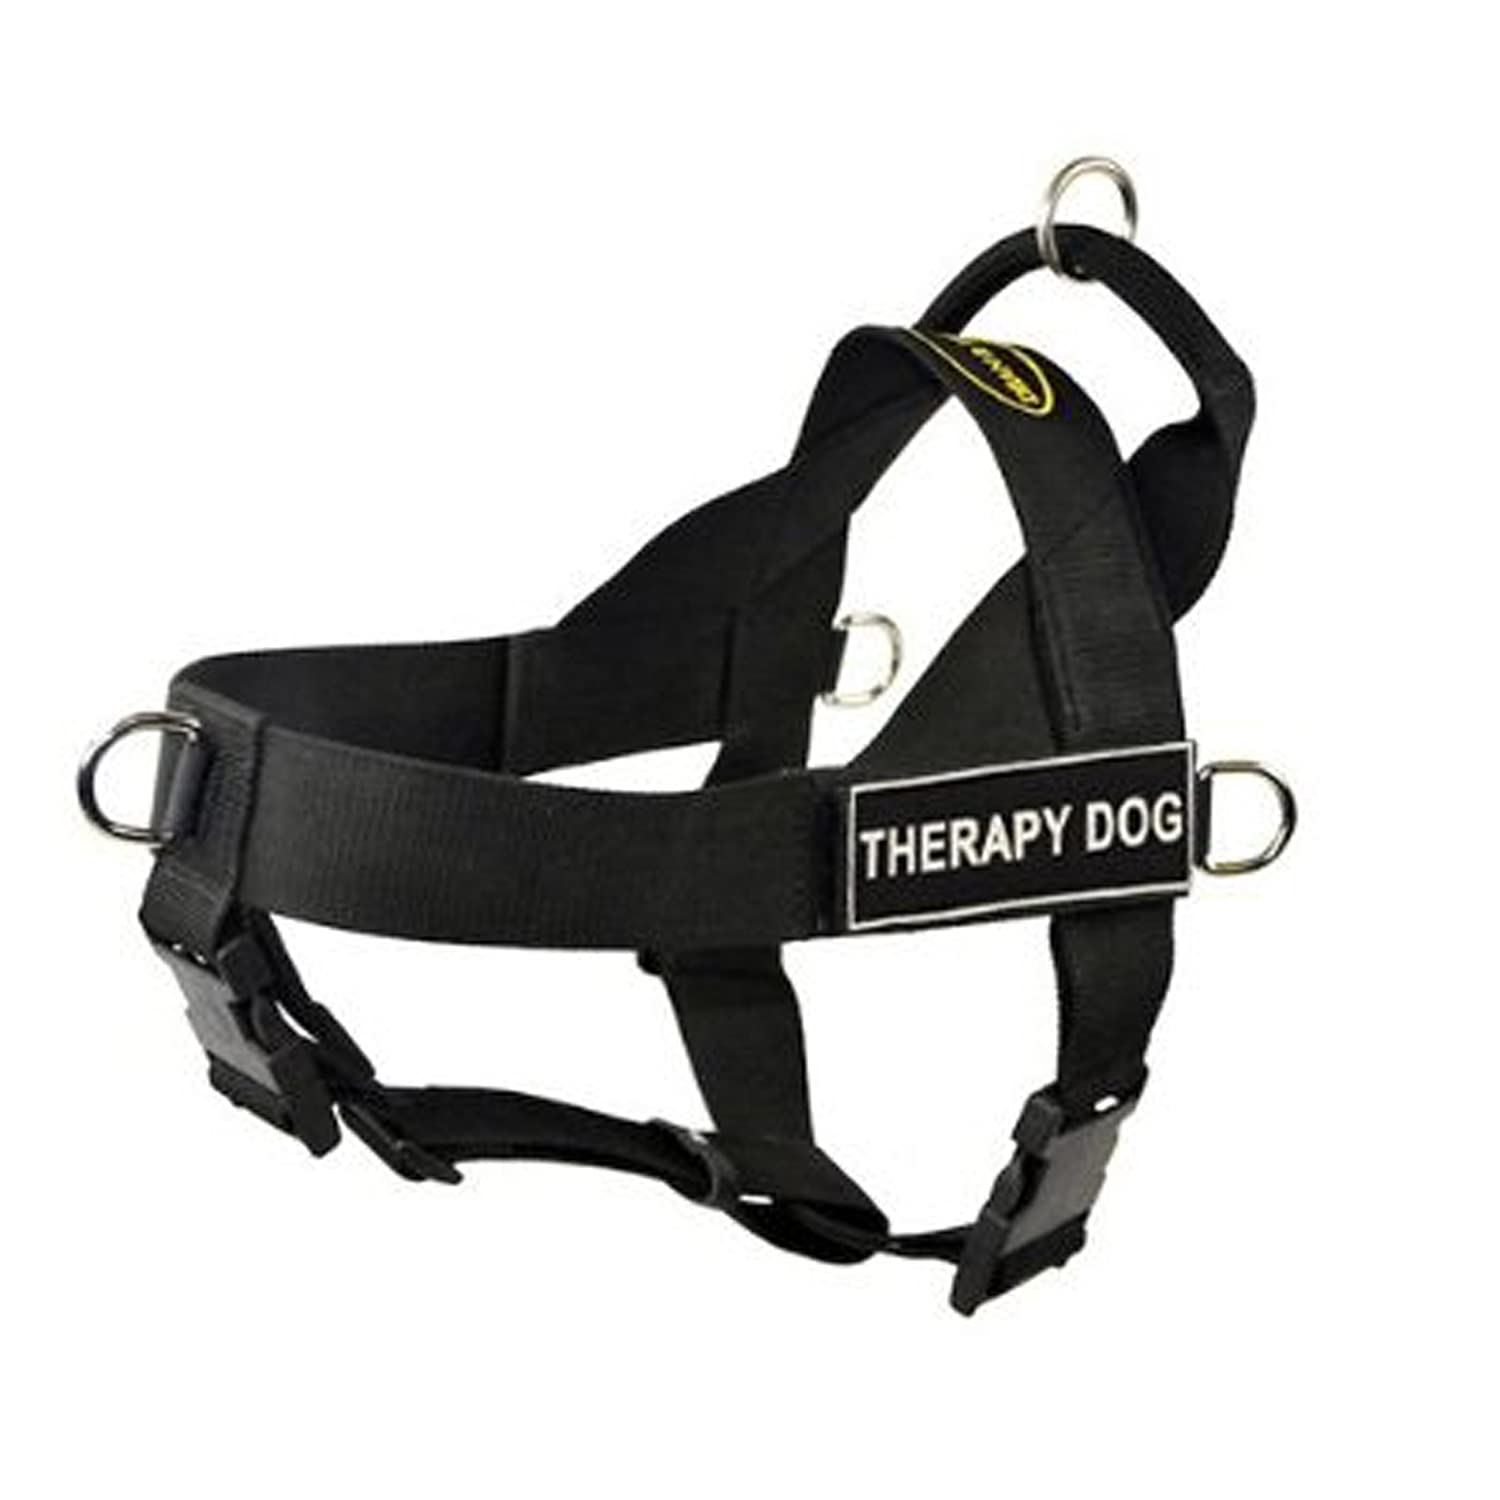 DT Universal No Pull Dog Harness, Therapy Dog, Black, X-Large Fits Girth Size  37-Inch to 47-Inch